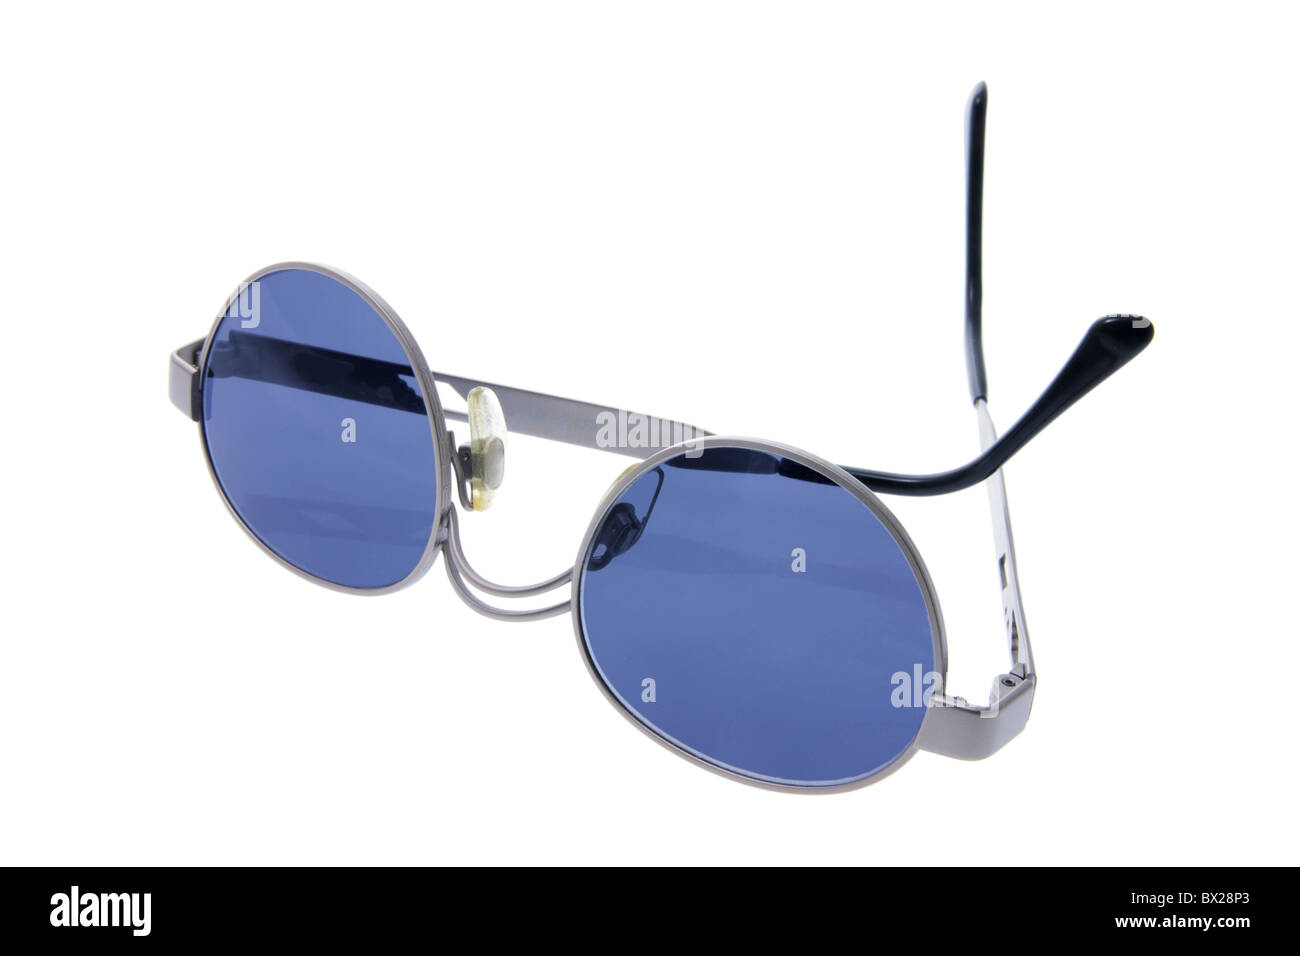 Sunglasses - Stock Image